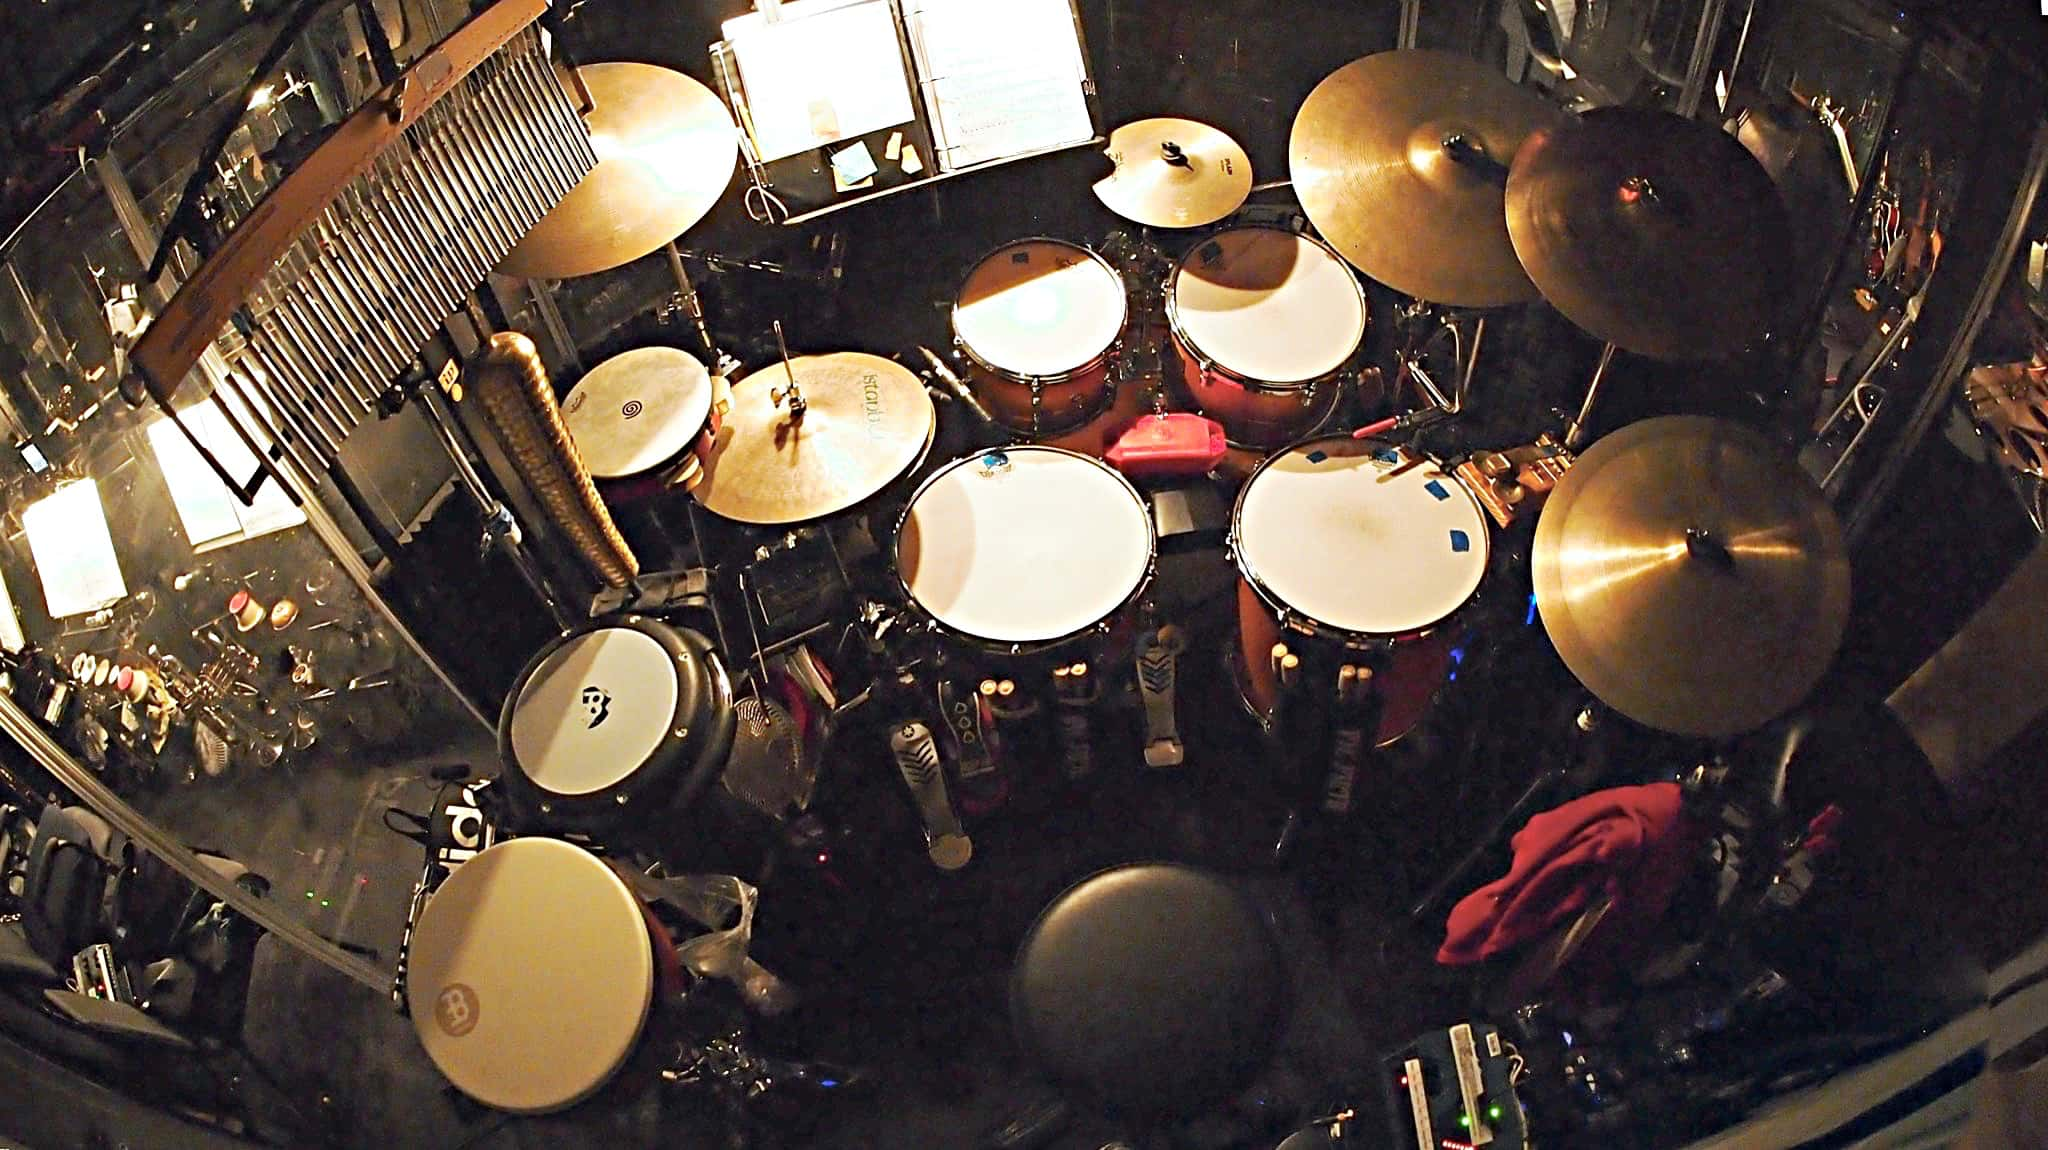 John Redsecker's drum set setup for the Broadway production of Aladdin at the New Amsterdam Theatre.